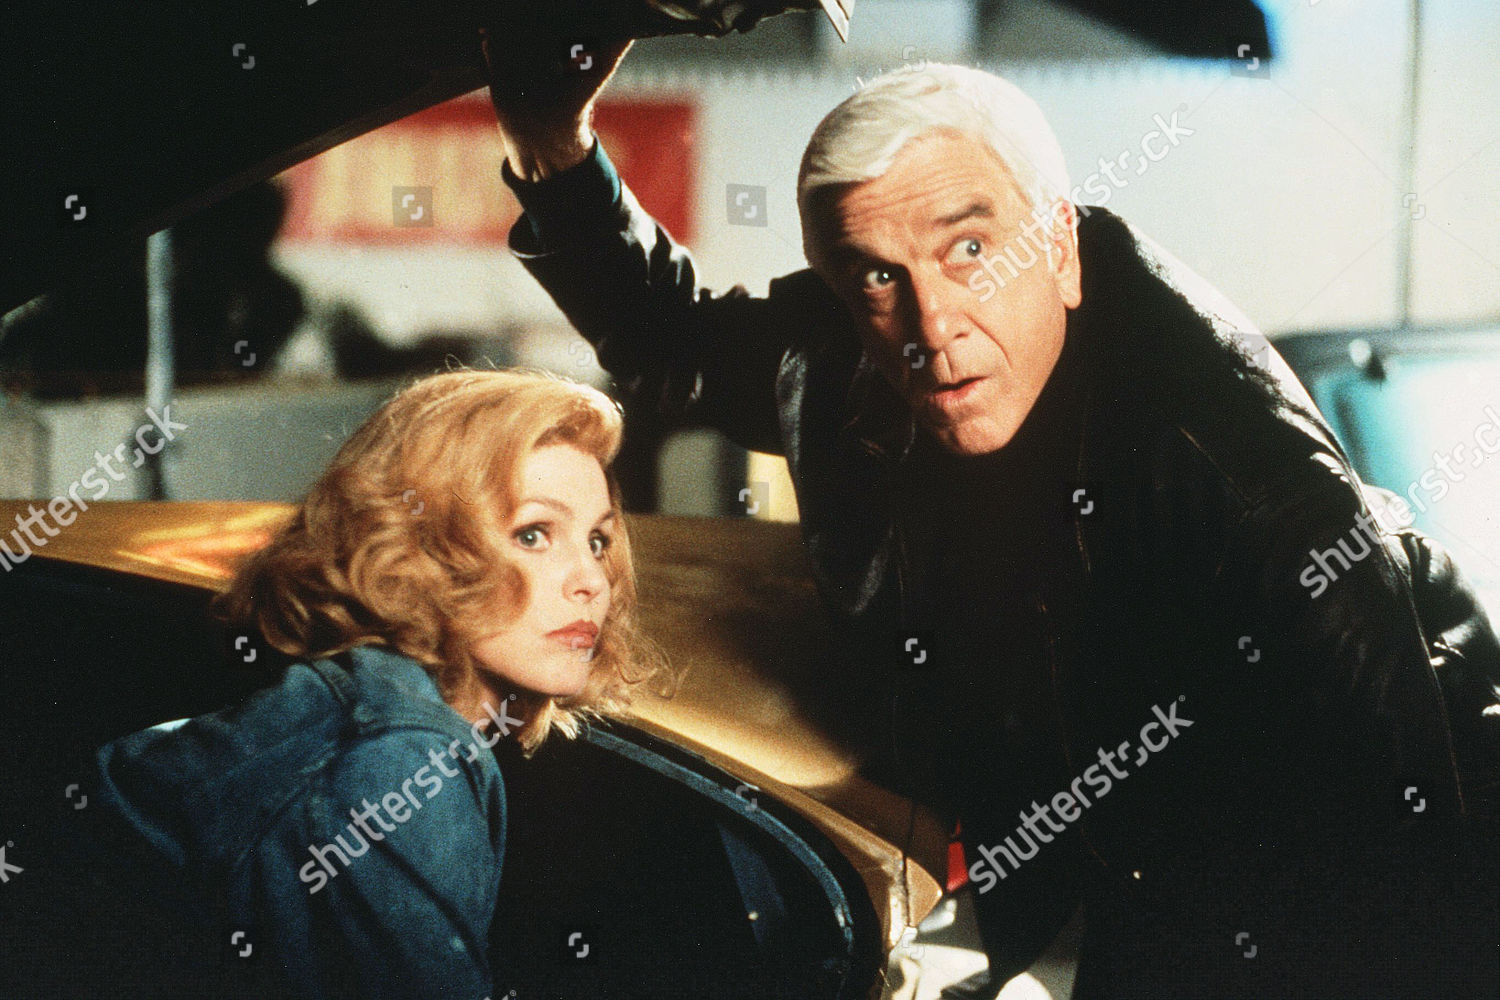 Naked Gun 33 1 / 3 - The Final Insult - 1994